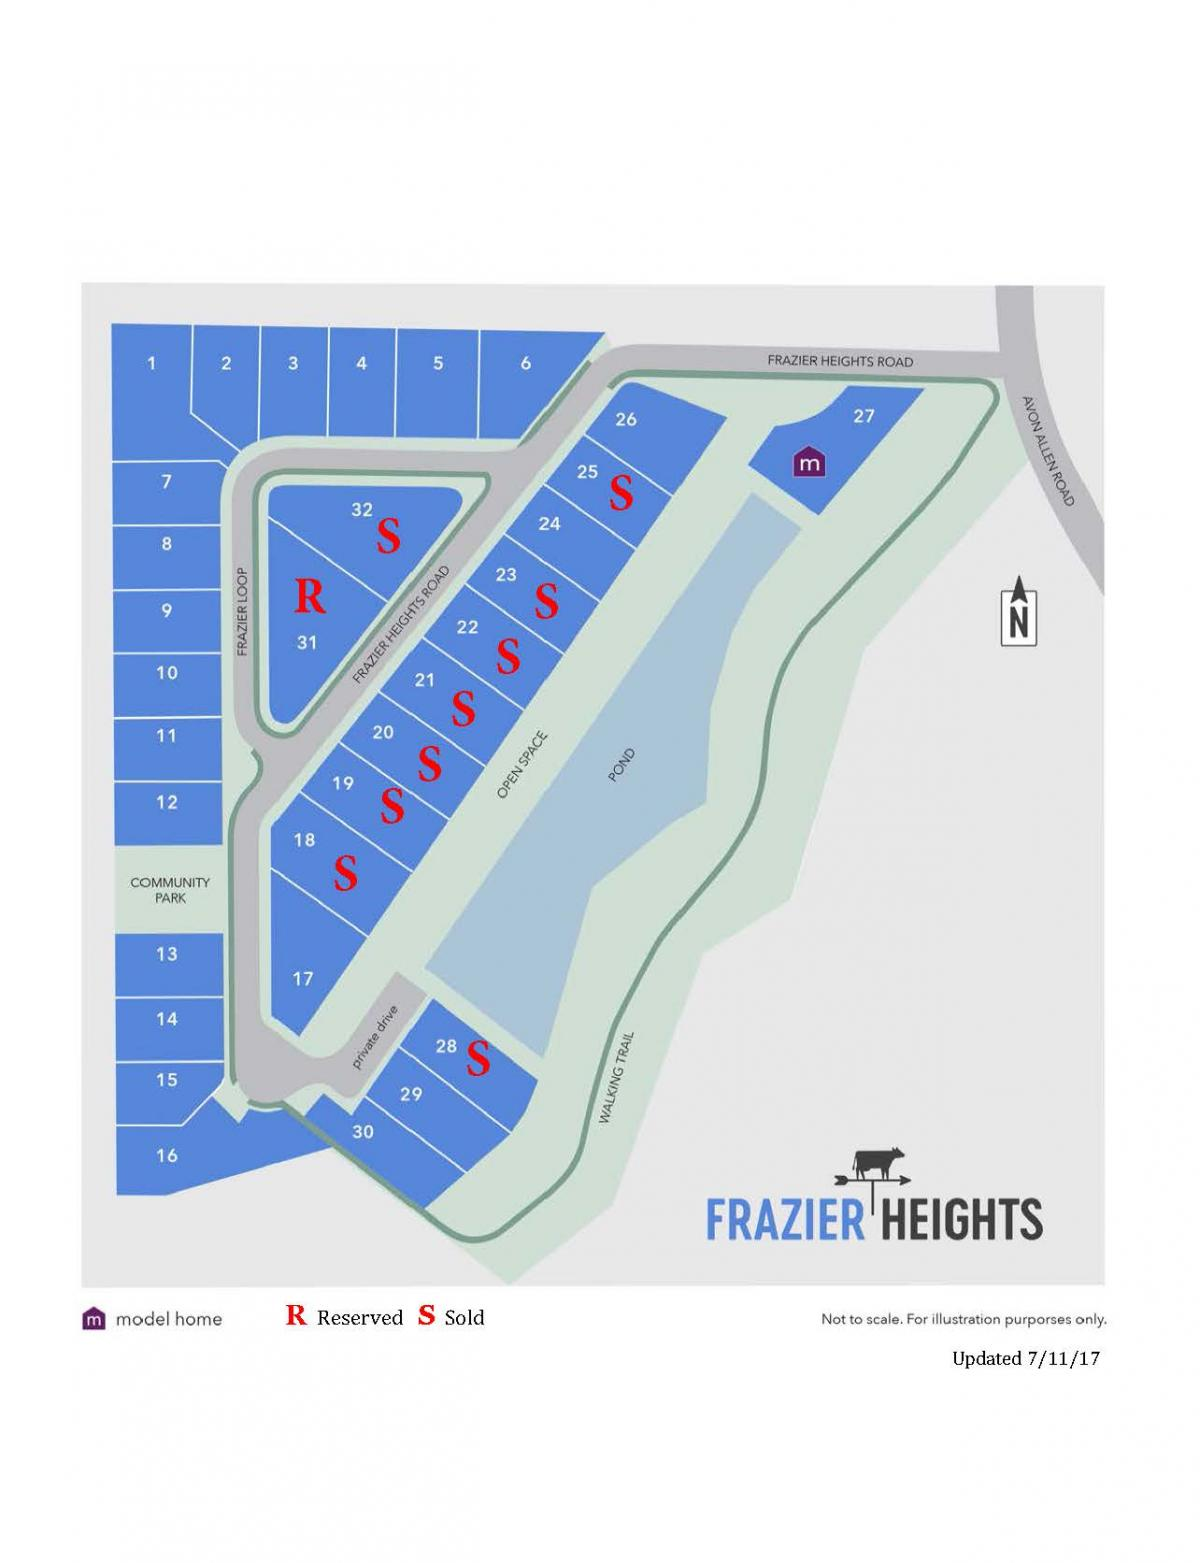 Frazier Heights availability